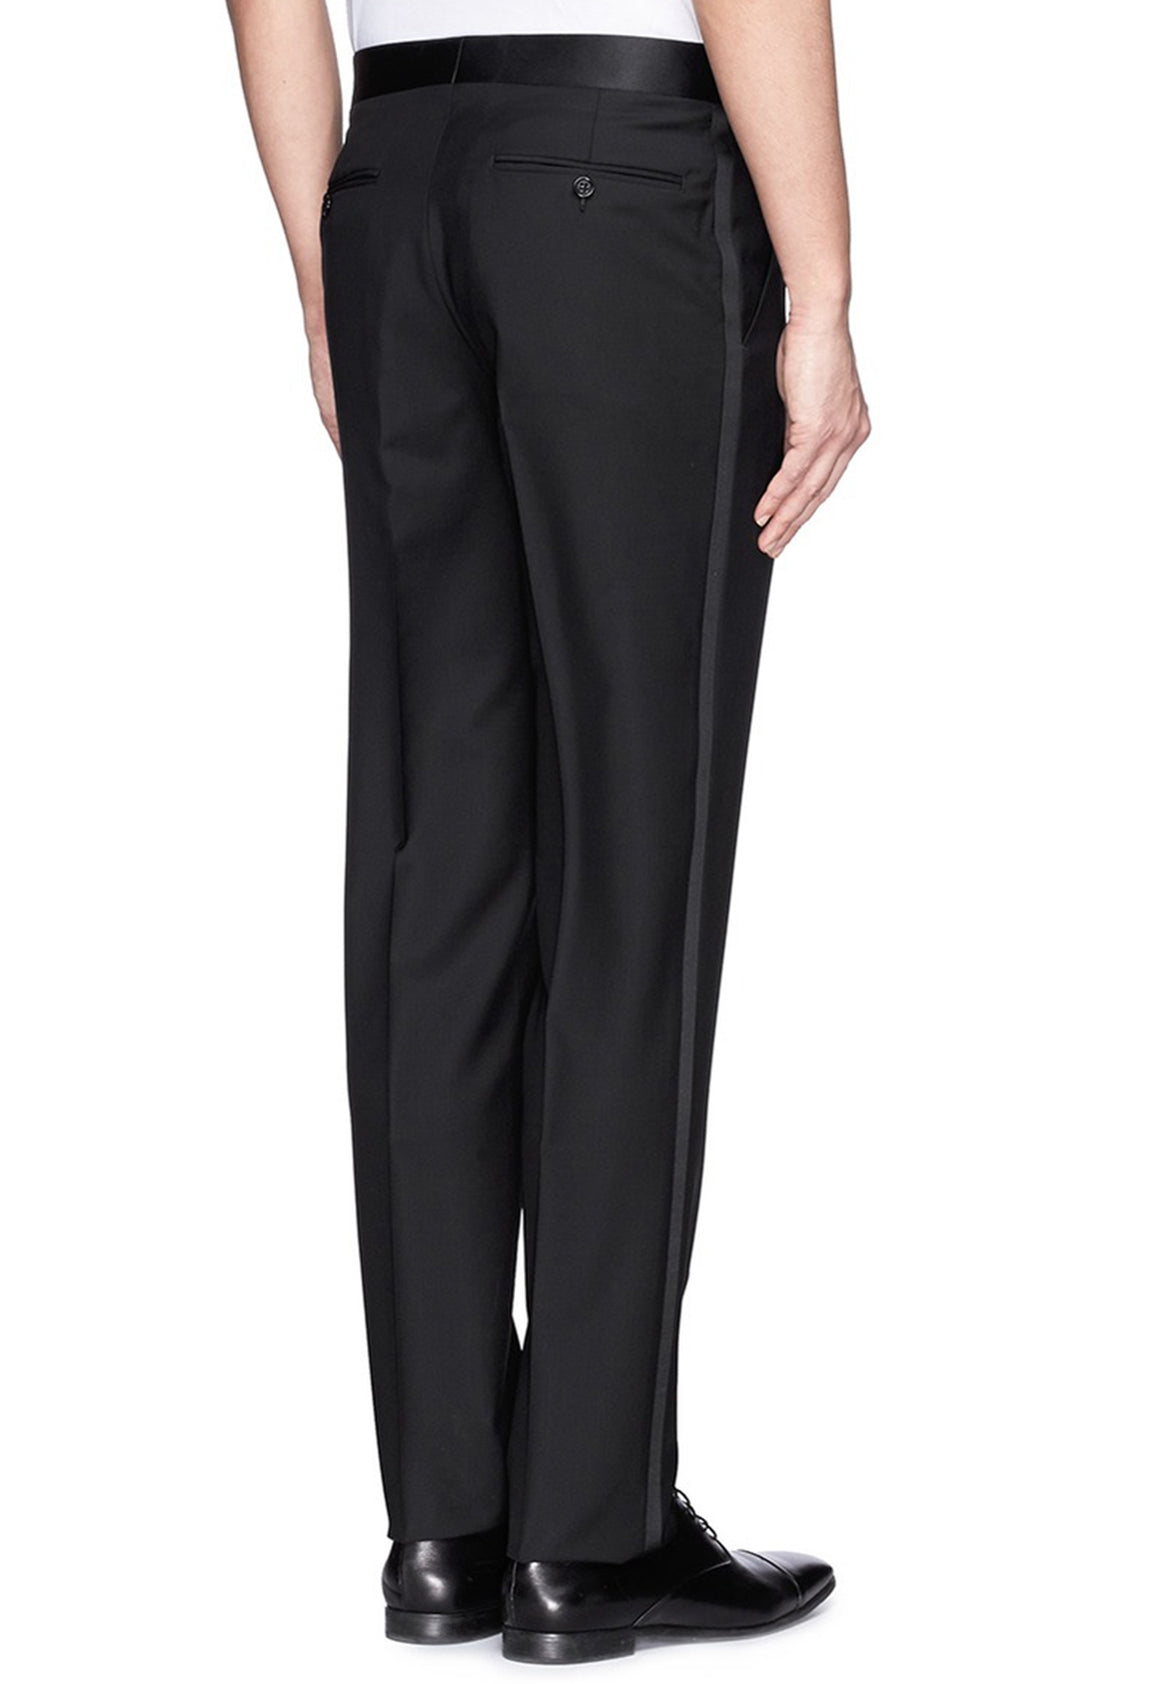 Men's Black, Pleated Front, Tuxedo Pants with Satin Stripe